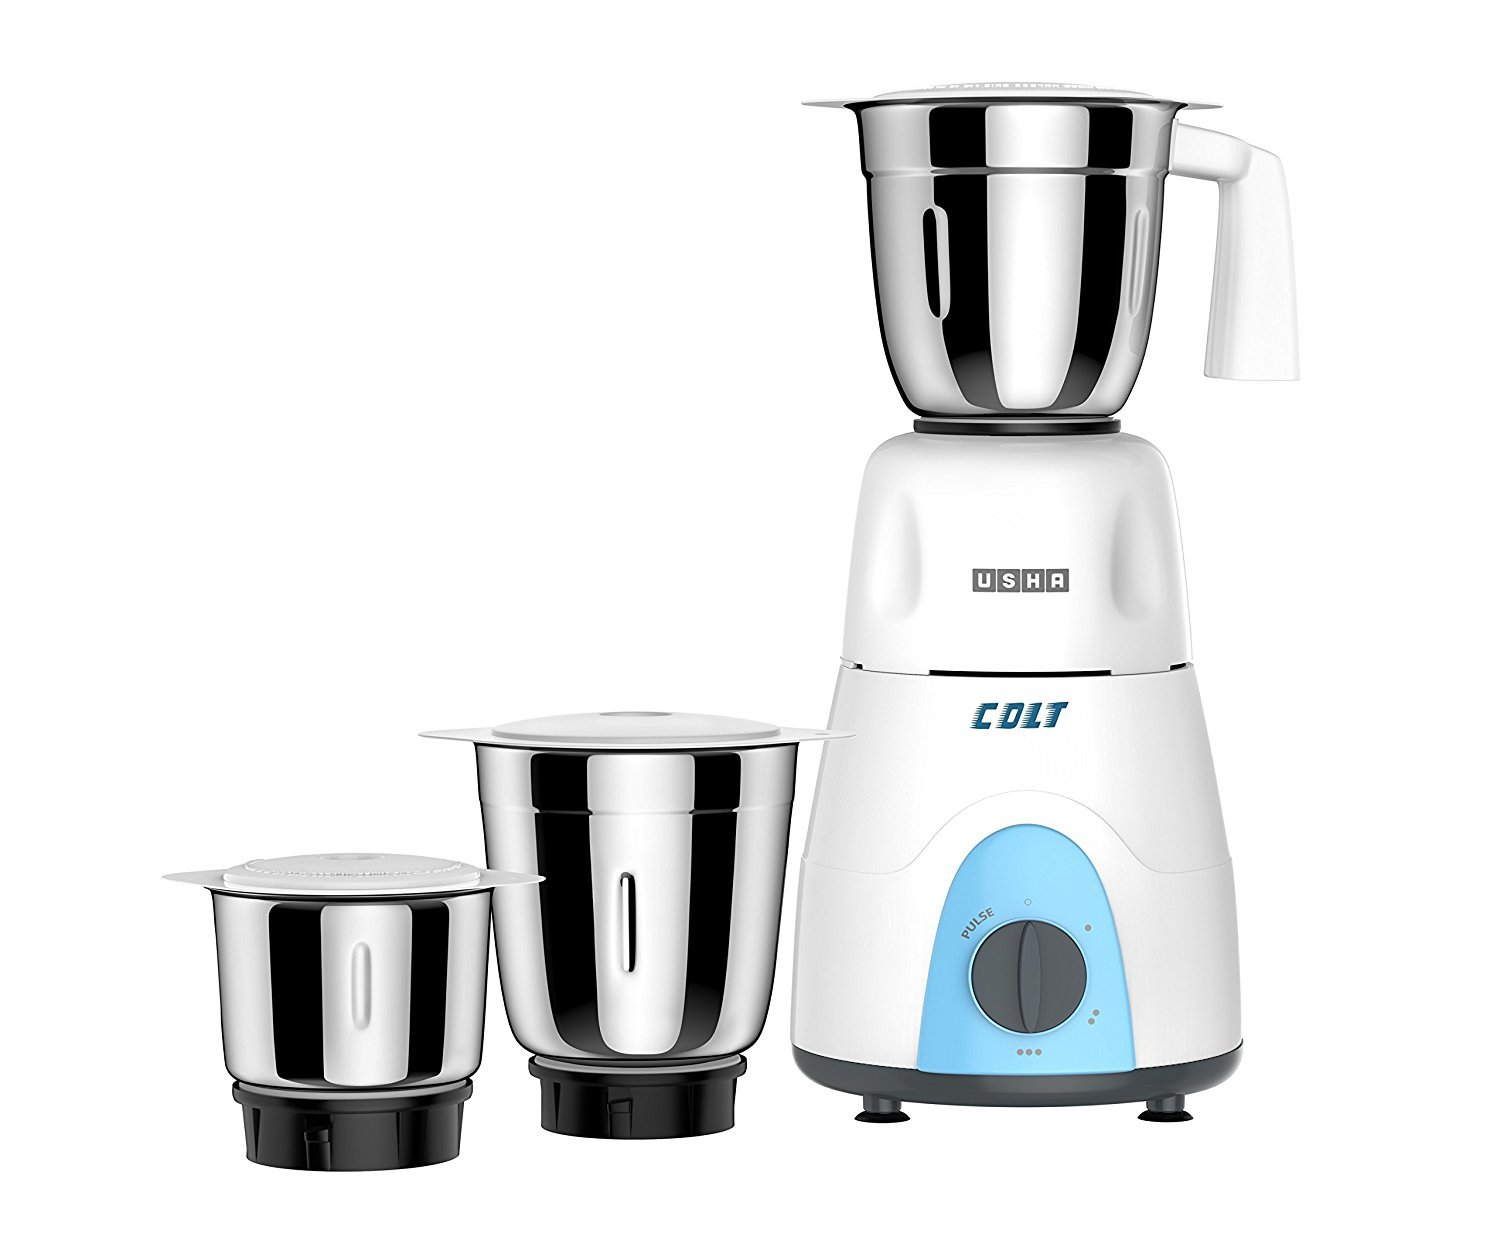 Usha MG3053 500-Watt Mixer Grinder with 3 Jars (White) By Amazon @ Rs.1,799